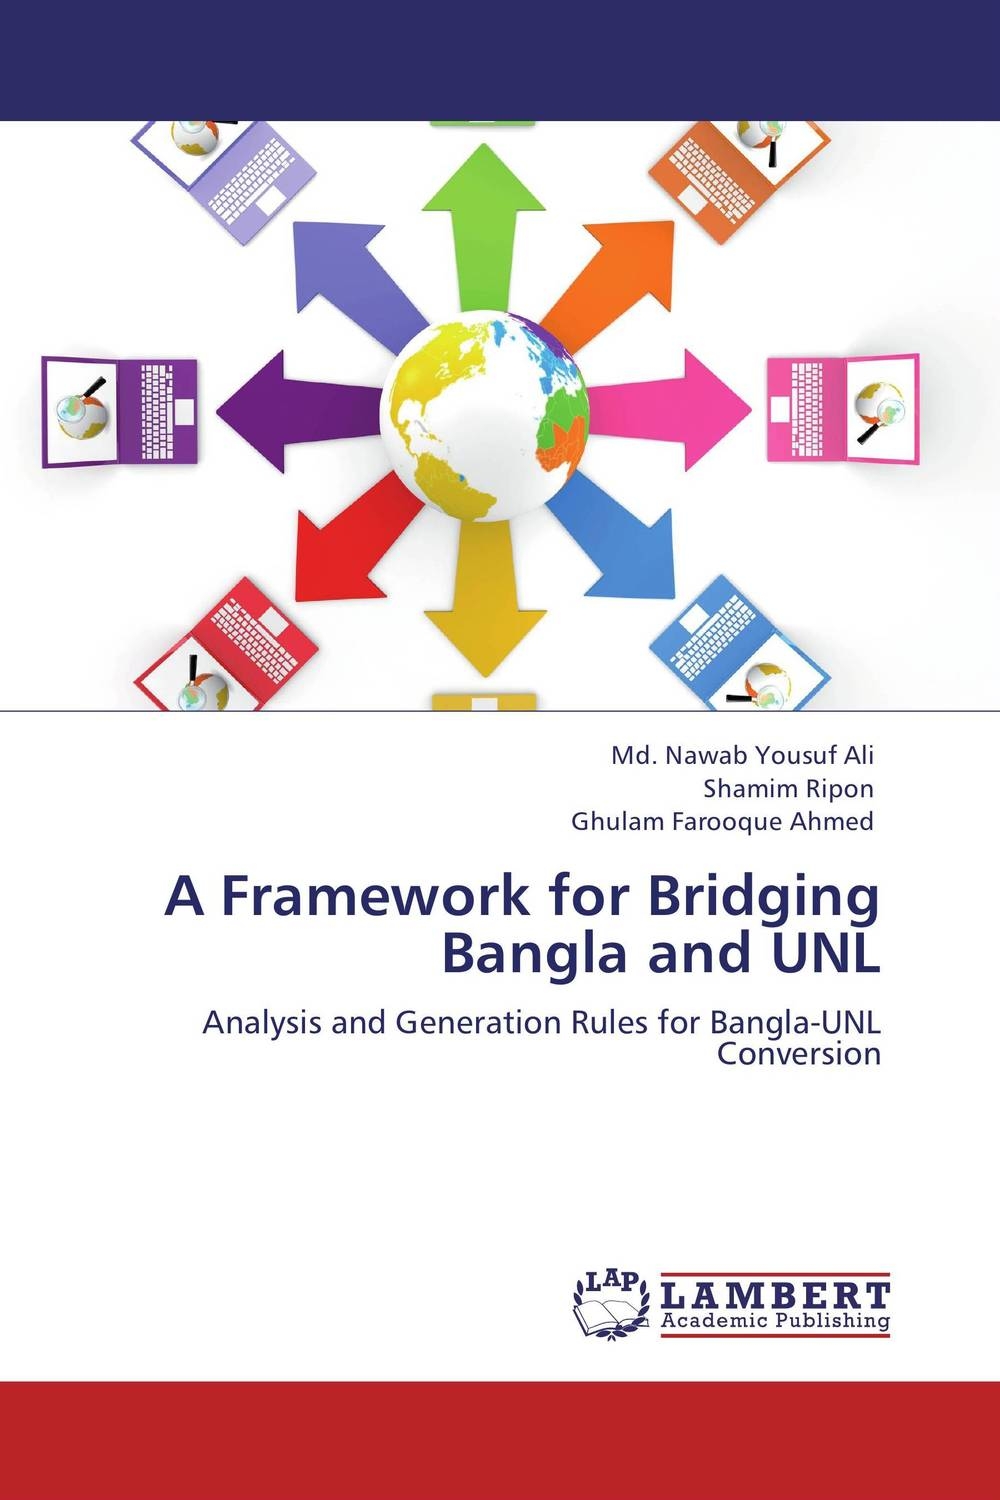 A Framework for Bridging Bangla and UNL laura – a case for the modularity of language